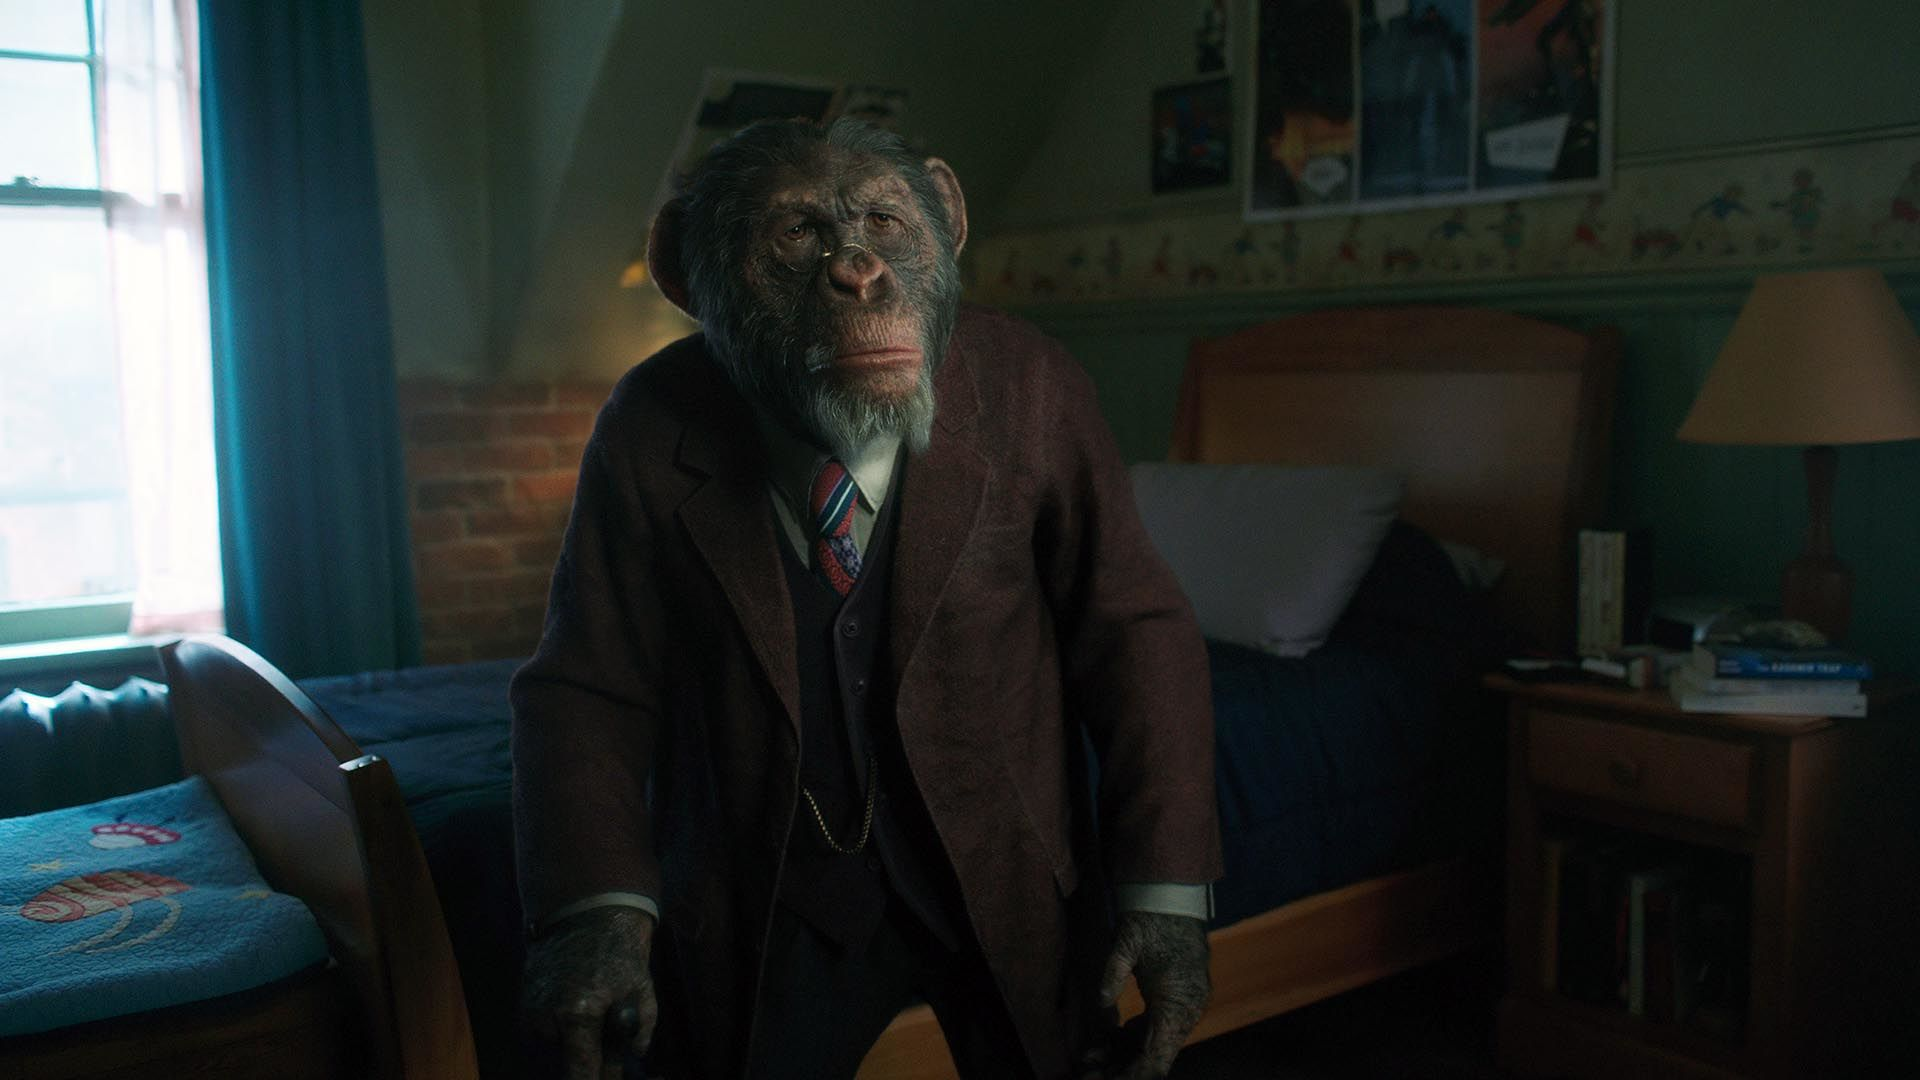 How The Umbrella Academy brought Pogo the monkey butler to life